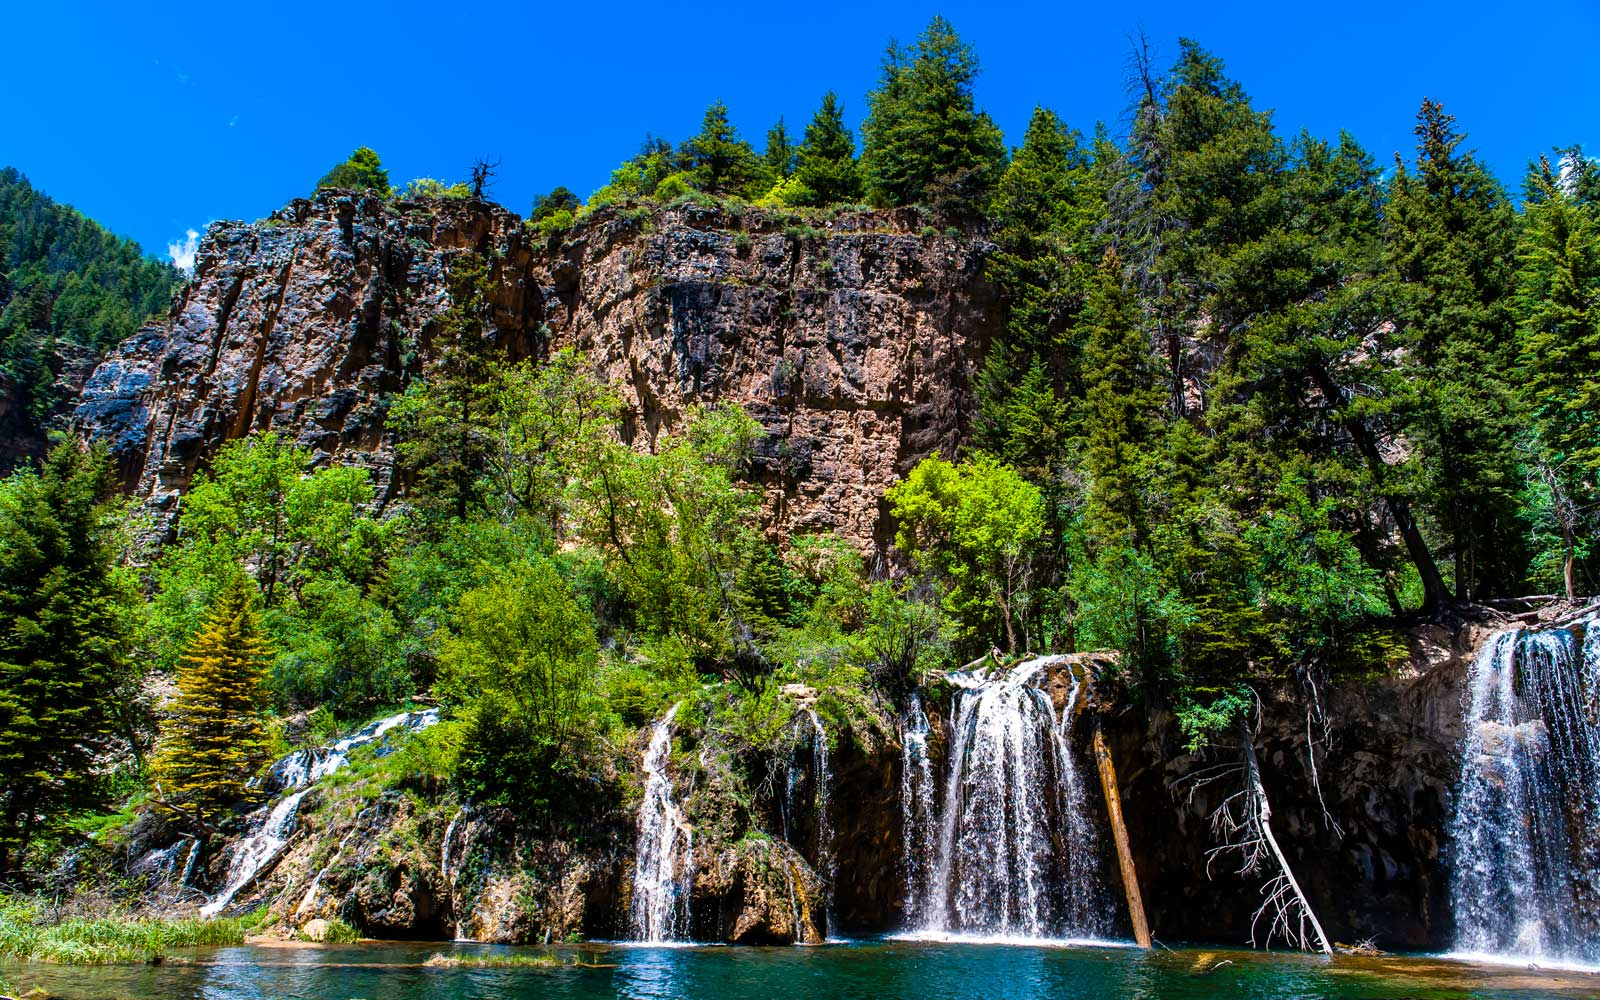 Colorado's Hanging Lake Is So Popular Visitors Have to Request a Permit in Advance